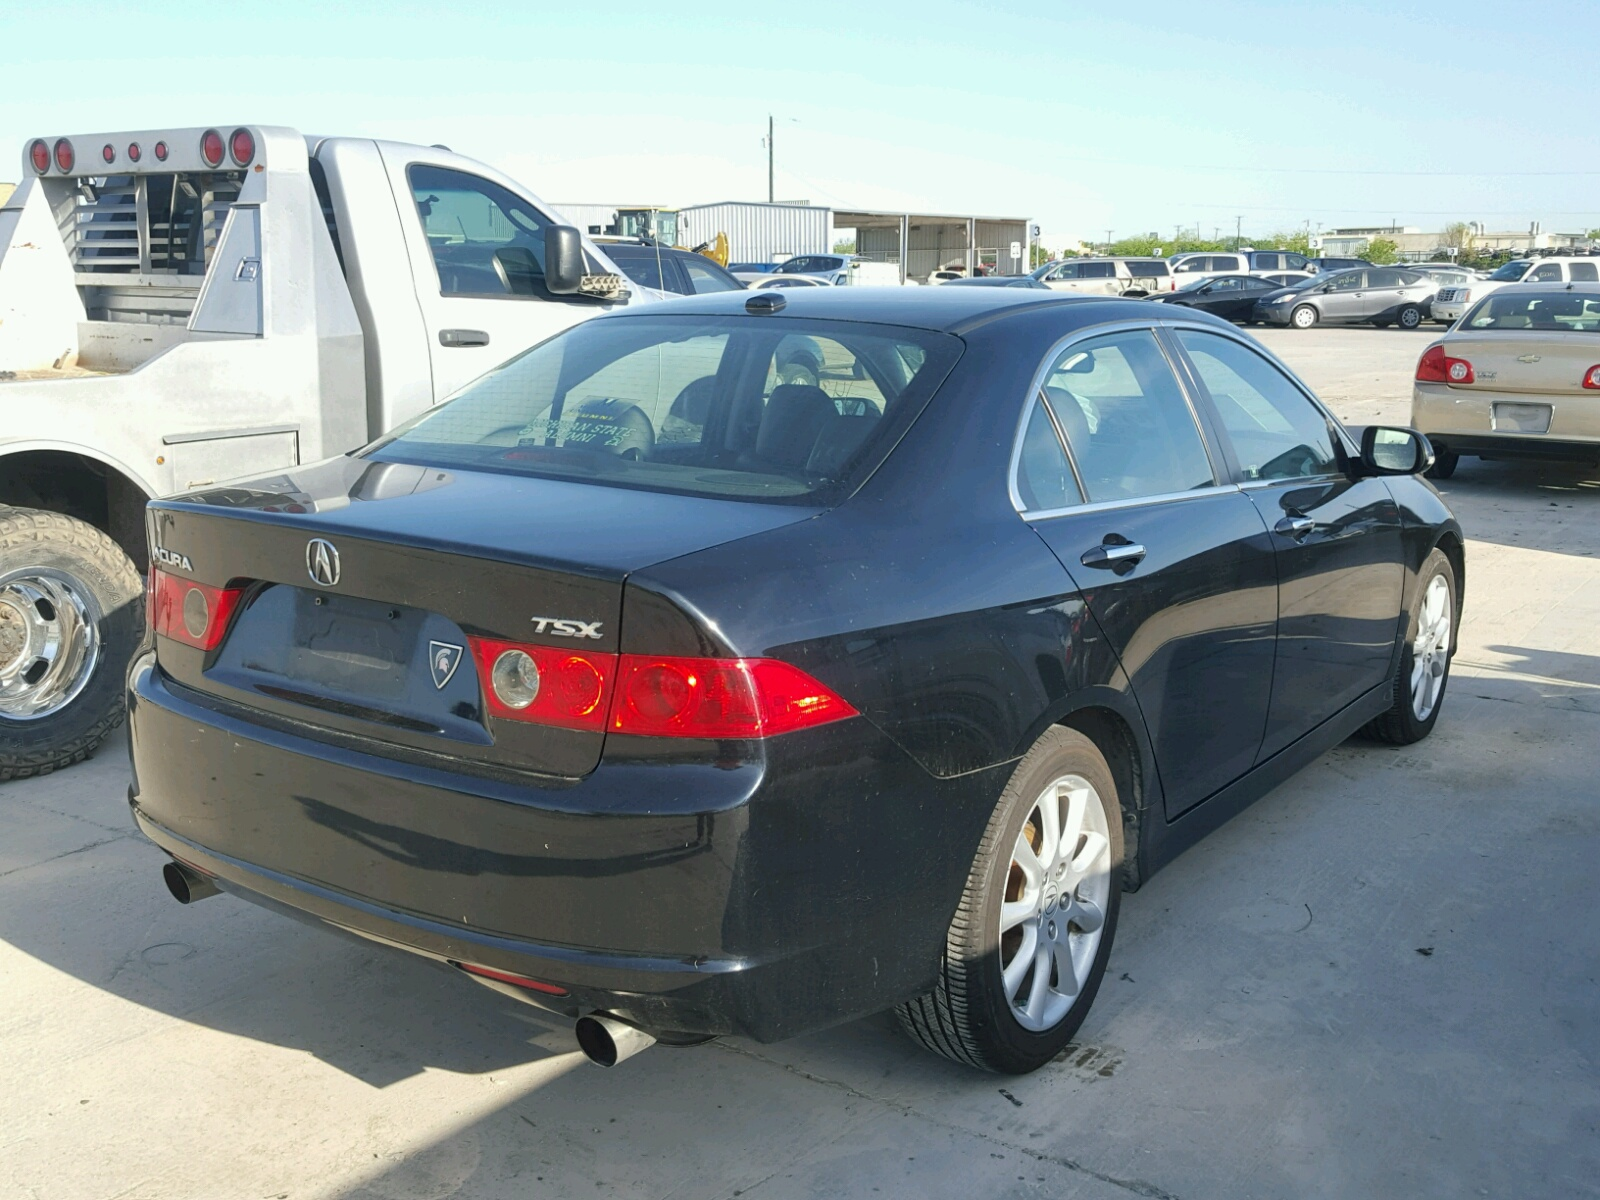 2007 Acura Tsx - Front End Damage - JH4CL96847C013931 (Sold) on